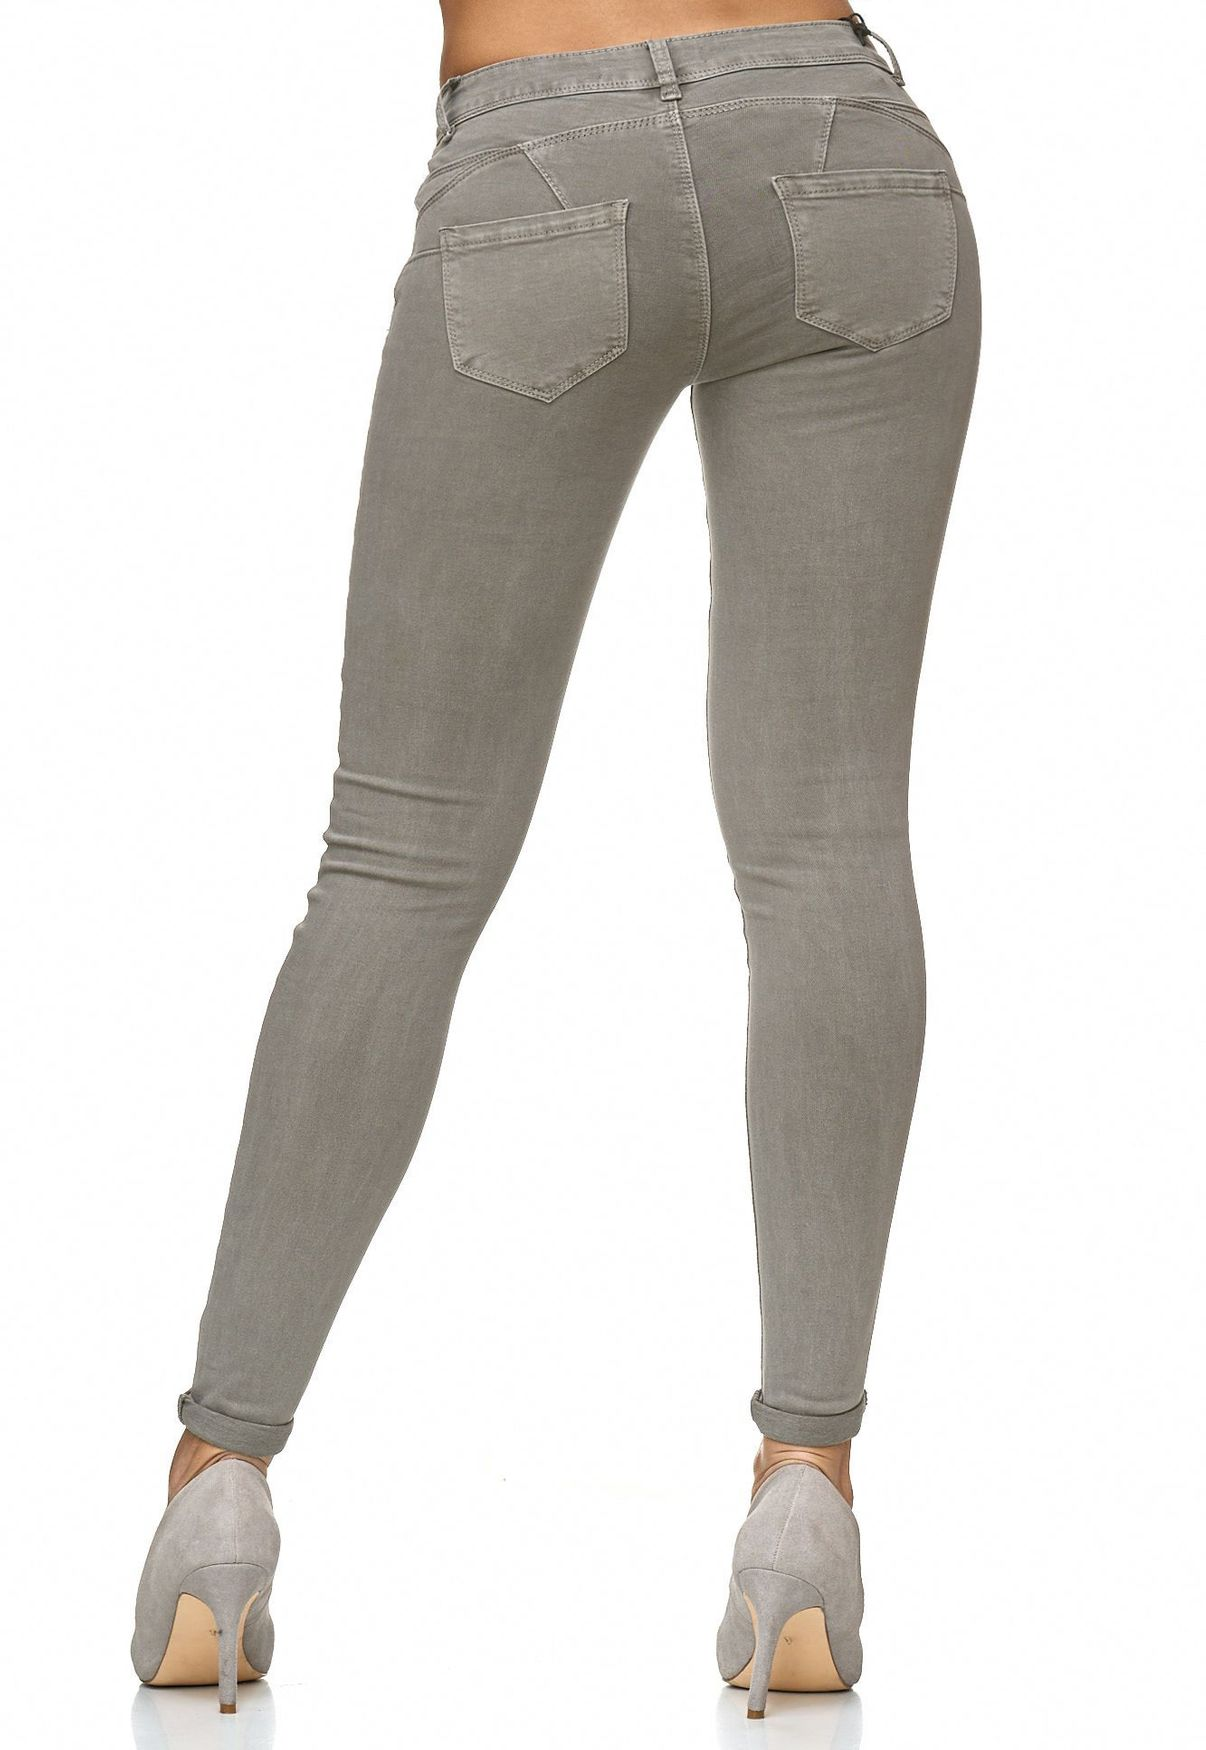 Jeans Röhre 34 36 38 40 42 grey used High Waist Stretchjeans Jeggings